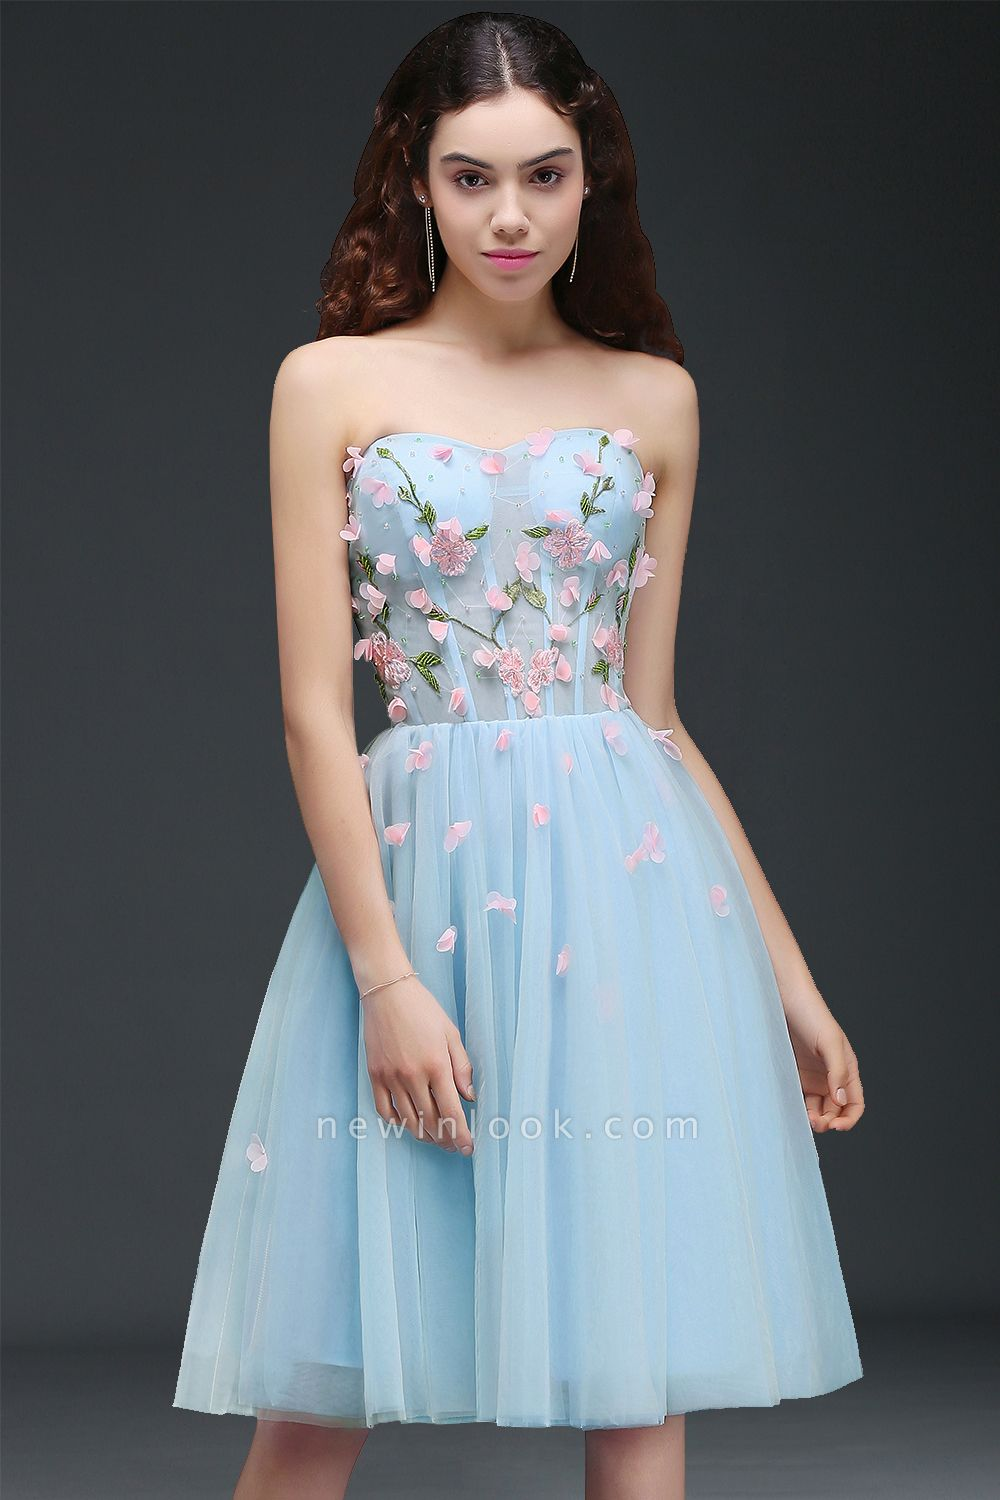 CLEMENTINE | Princess Sweetheart Knee-length Sky Blue Quince Dama Dress with Lace-up Back